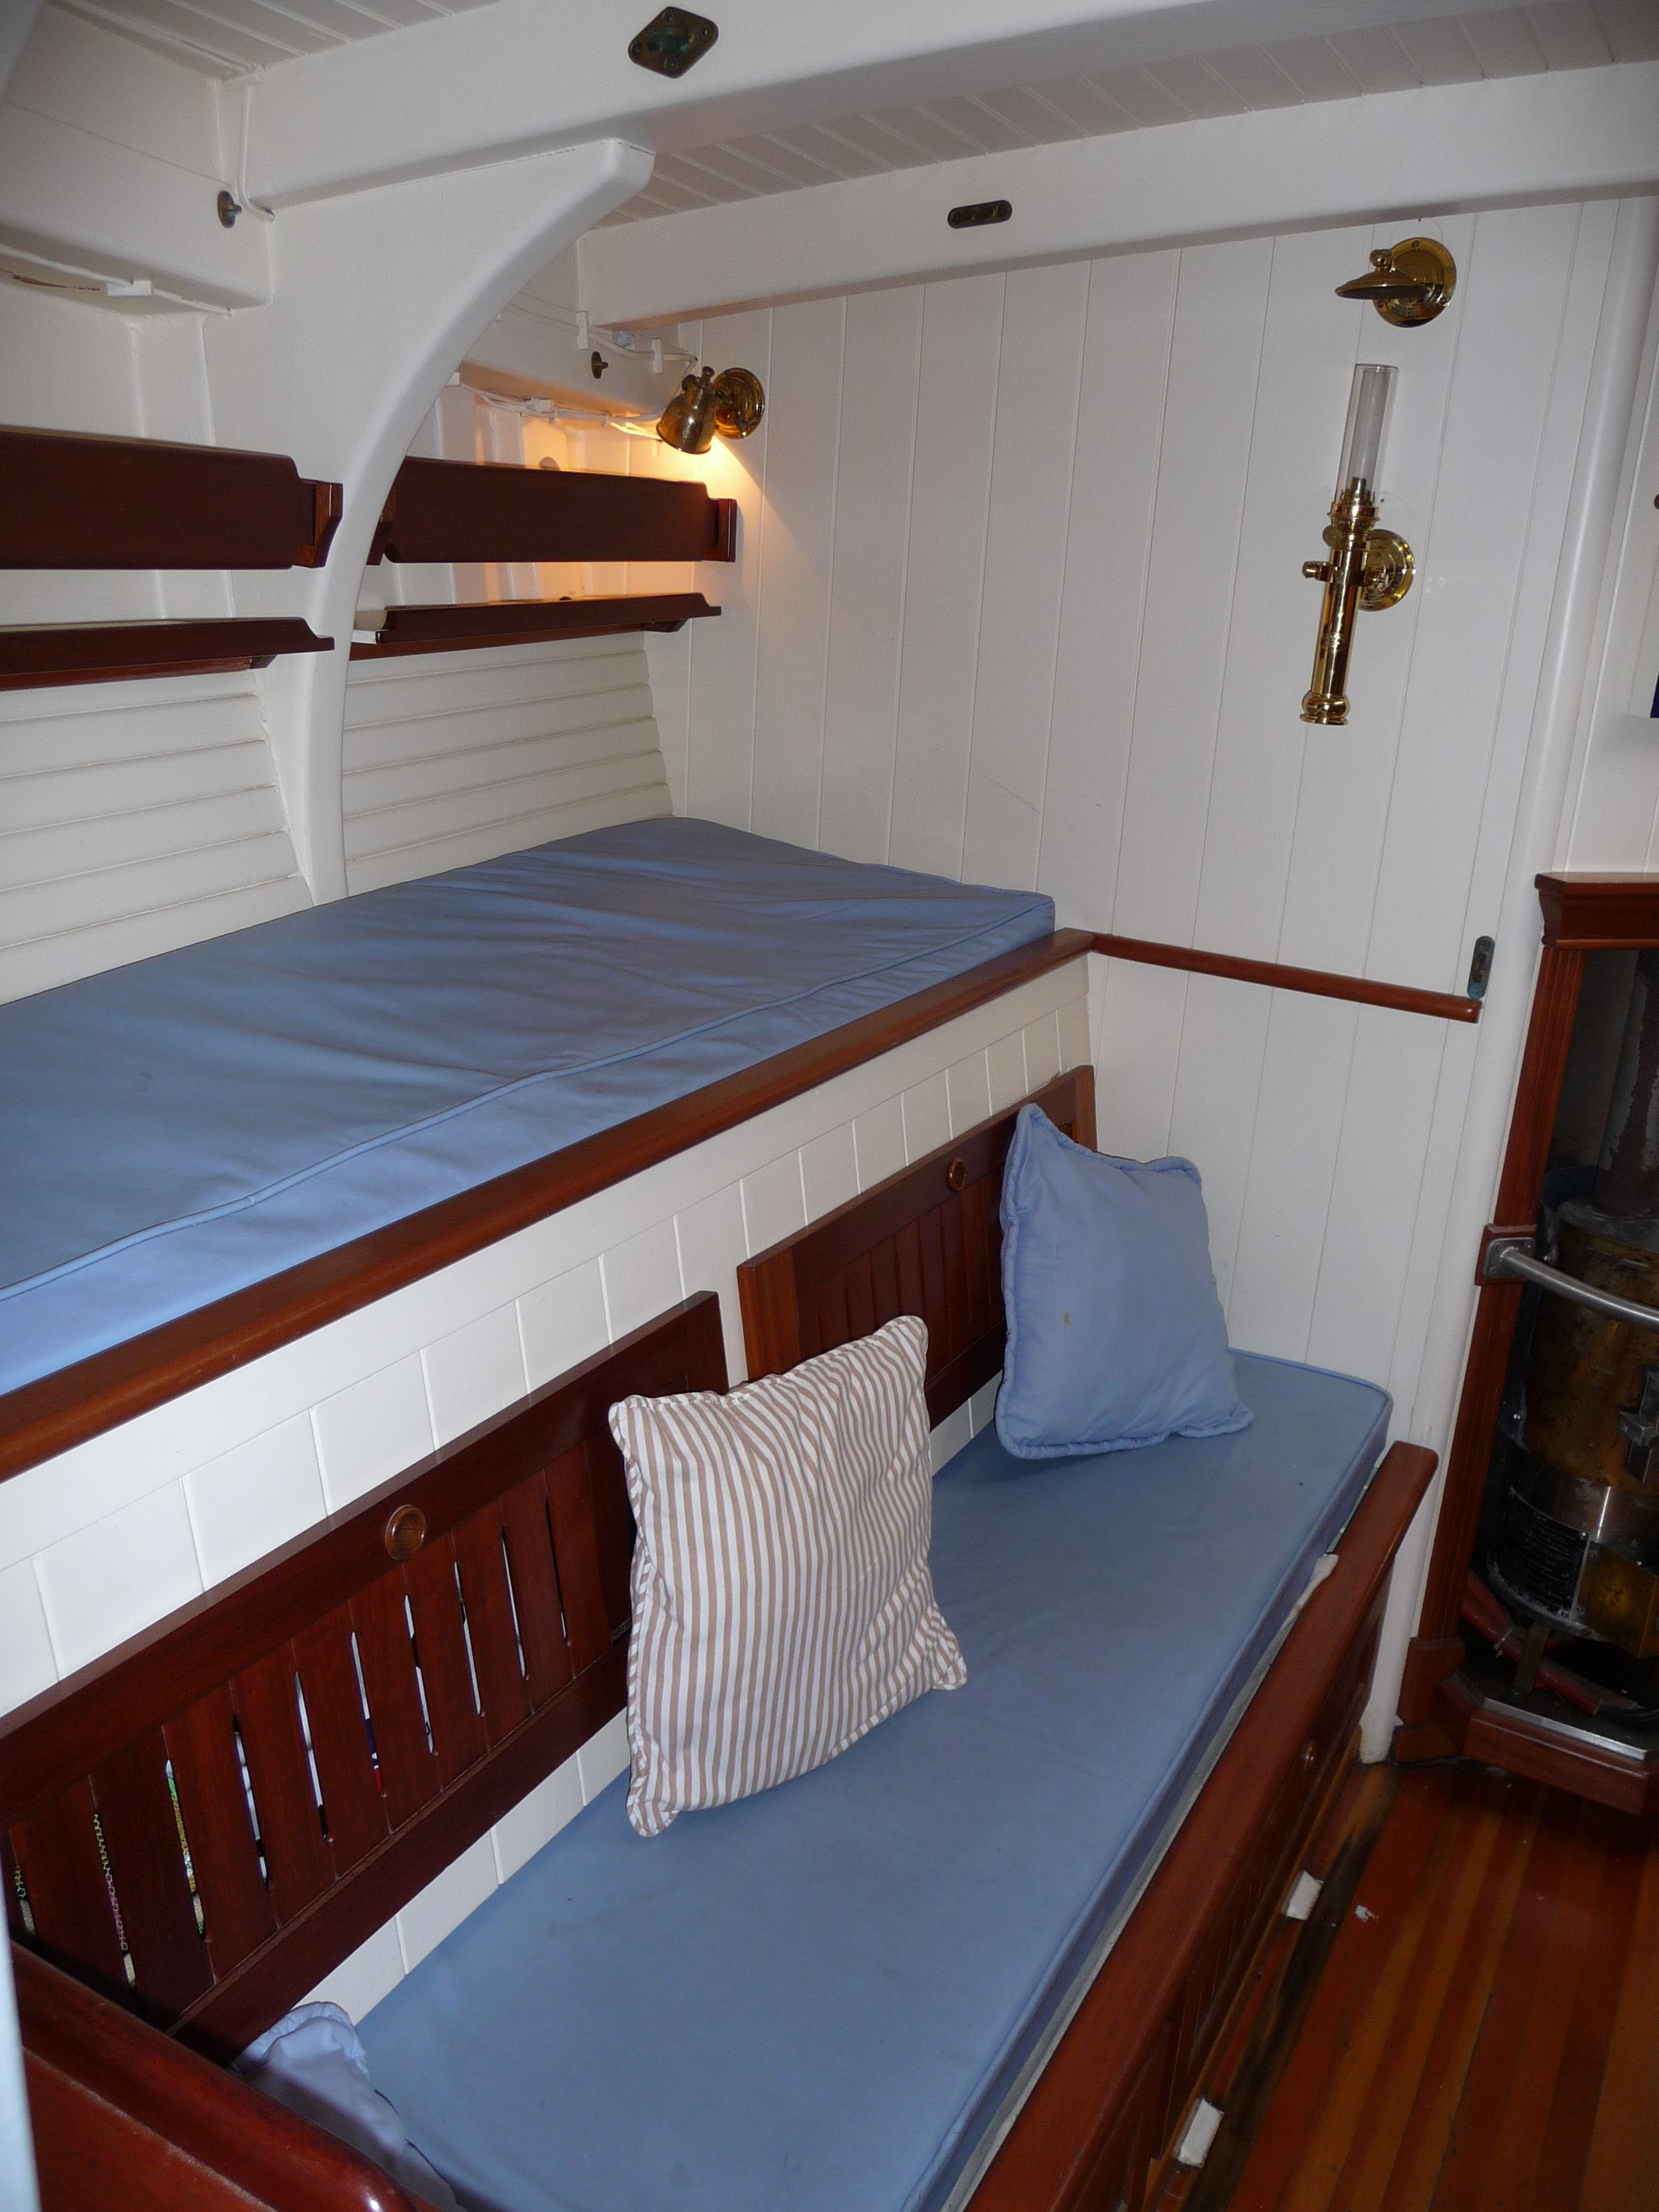 Berth Pictures To Pin On Pinterest Pinsdaddy